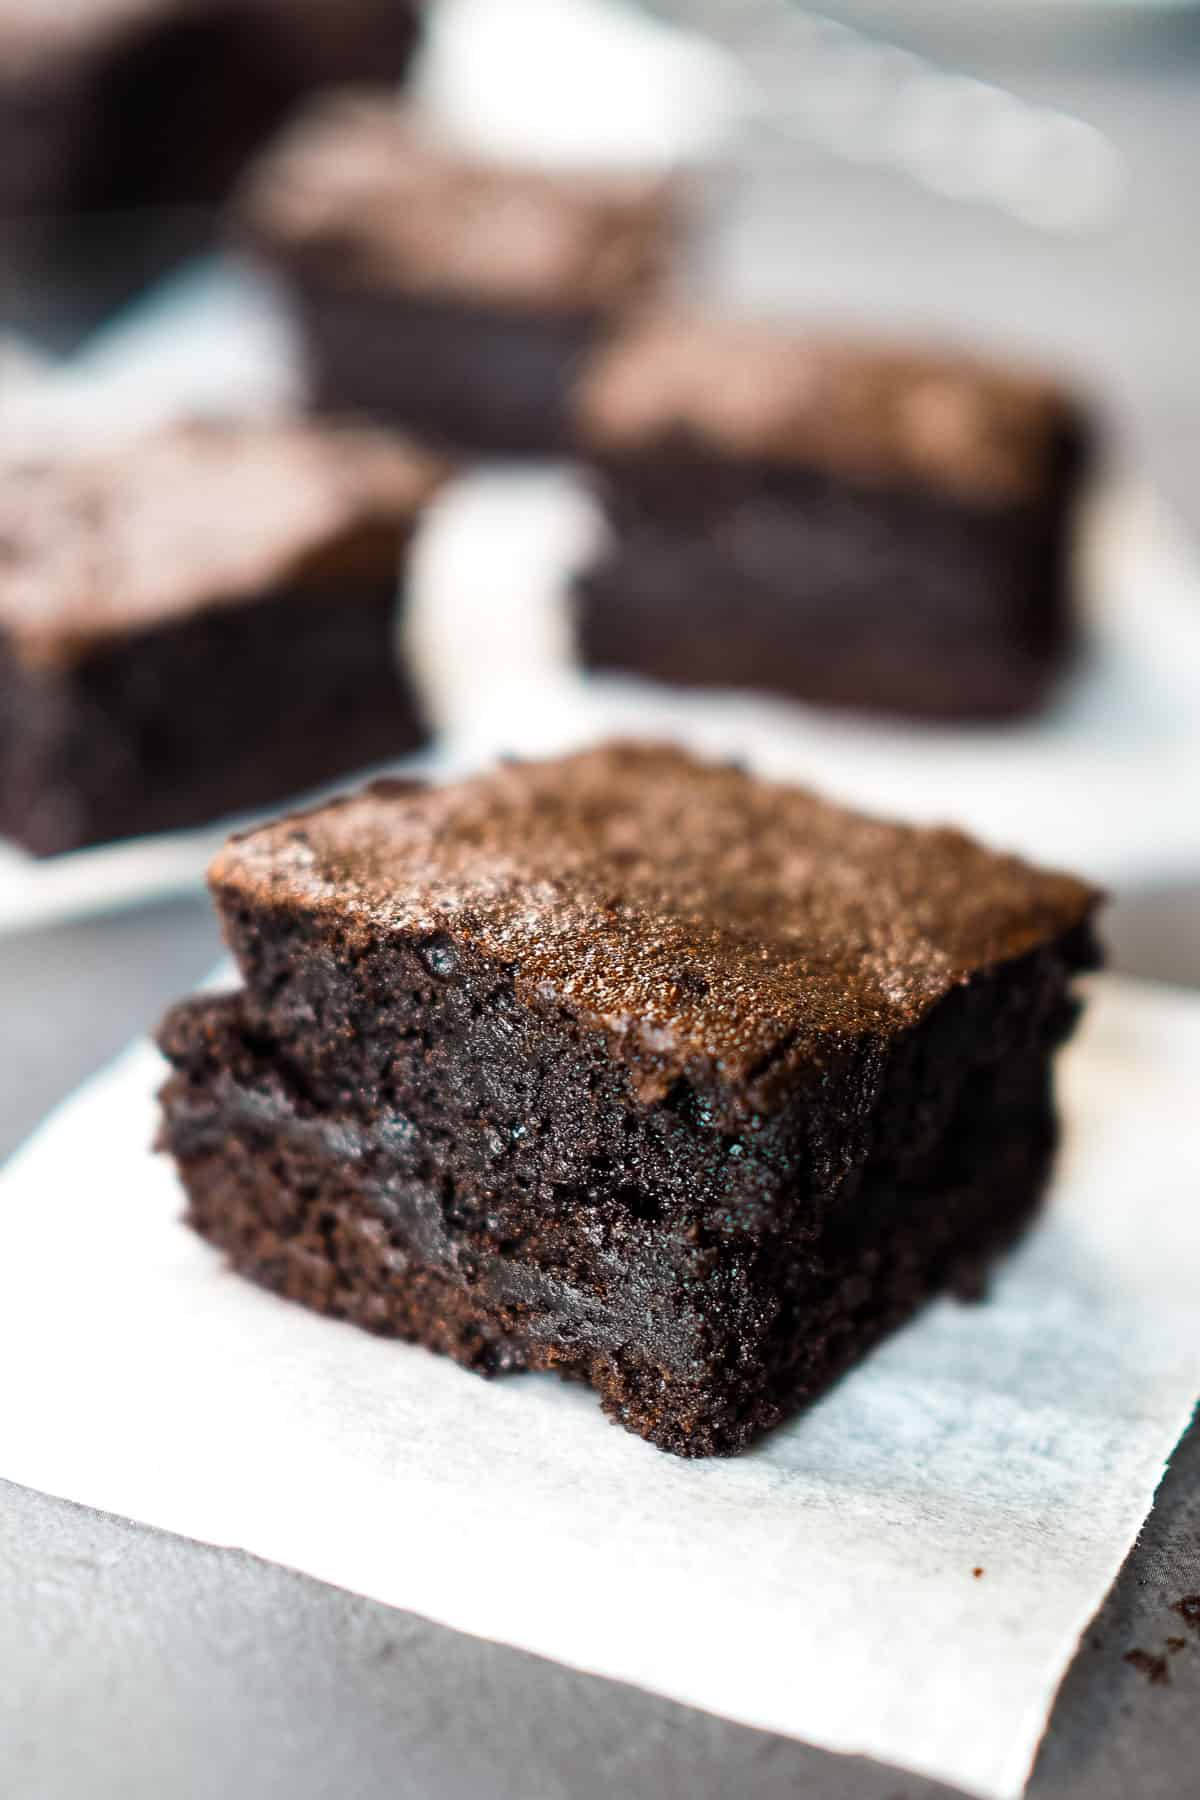 Close up of a square piece of dark and fudgy cocoa powder brownies